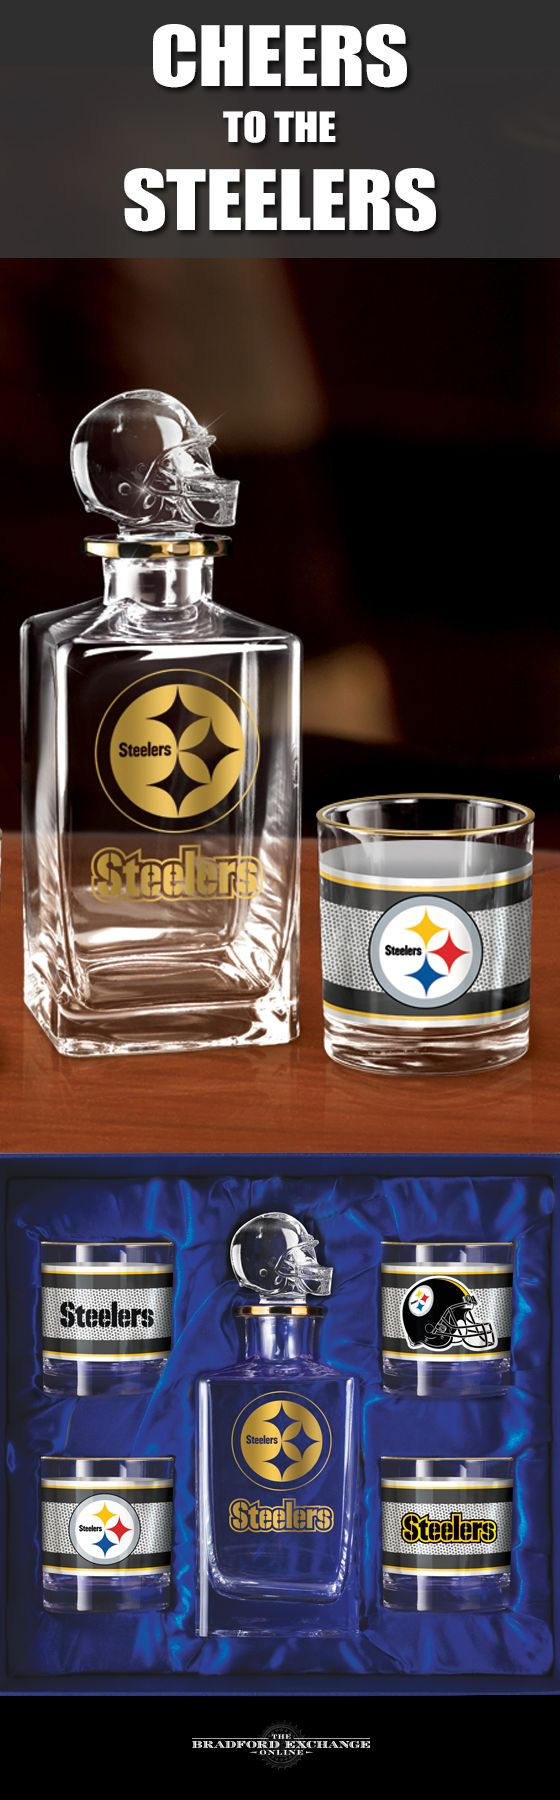 Raise a toast to your Pittsburgh Steelers with a handsome 5-piece decanter set. This officially-licensed NFL barware set includes a crystal-clear decanter with a team helmet stopper, 4 team icon glasses rimmed in gleaming 12K gold and a satin-lined gift box